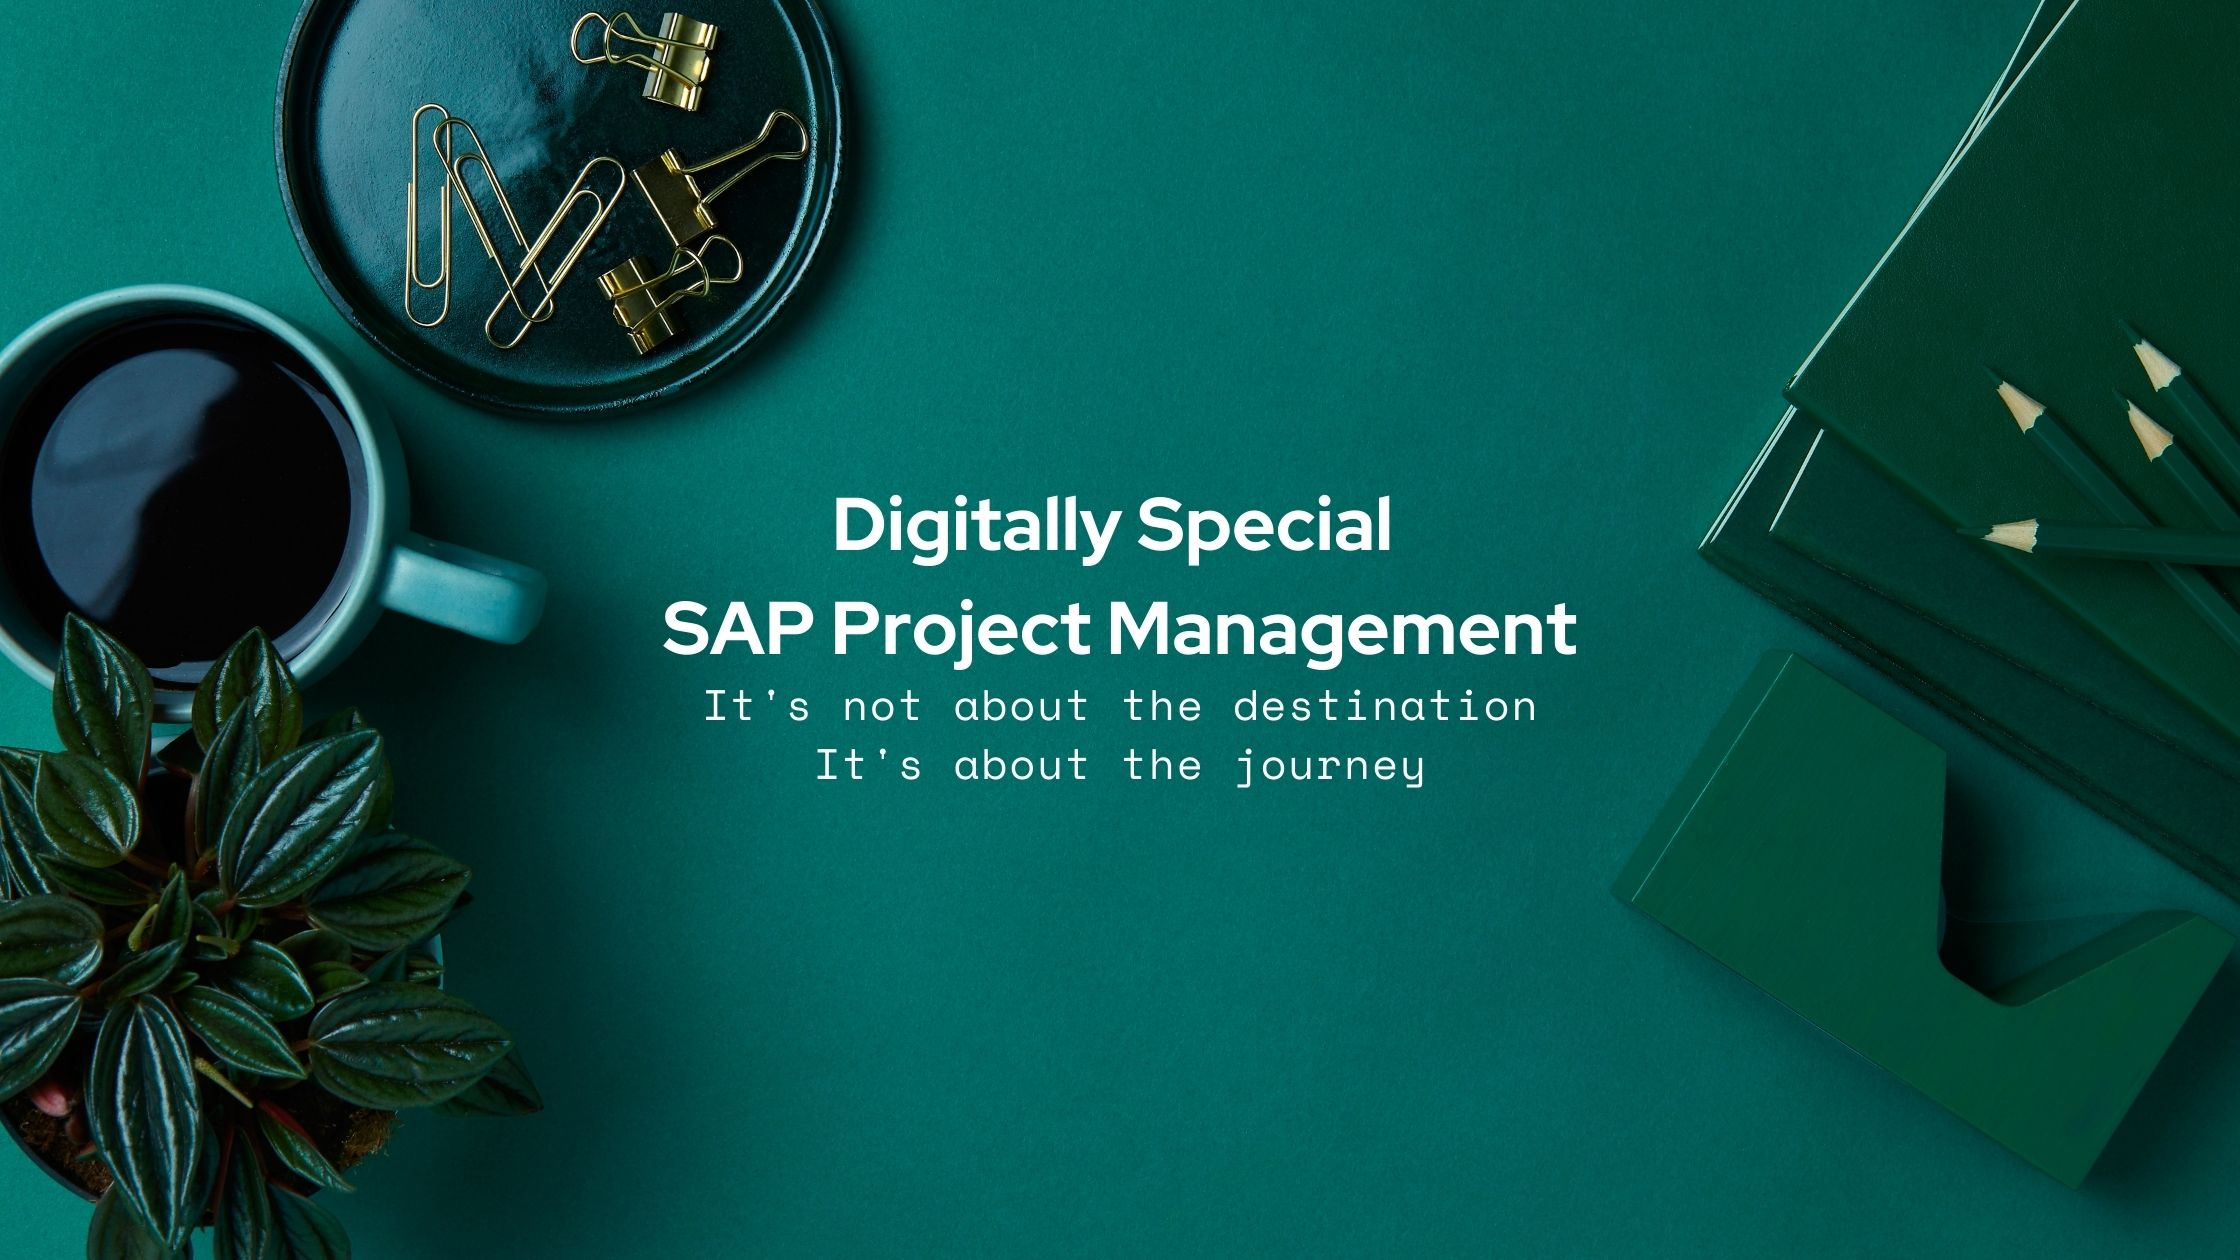 Digitally%20Special%20SAP%20Project%20Management